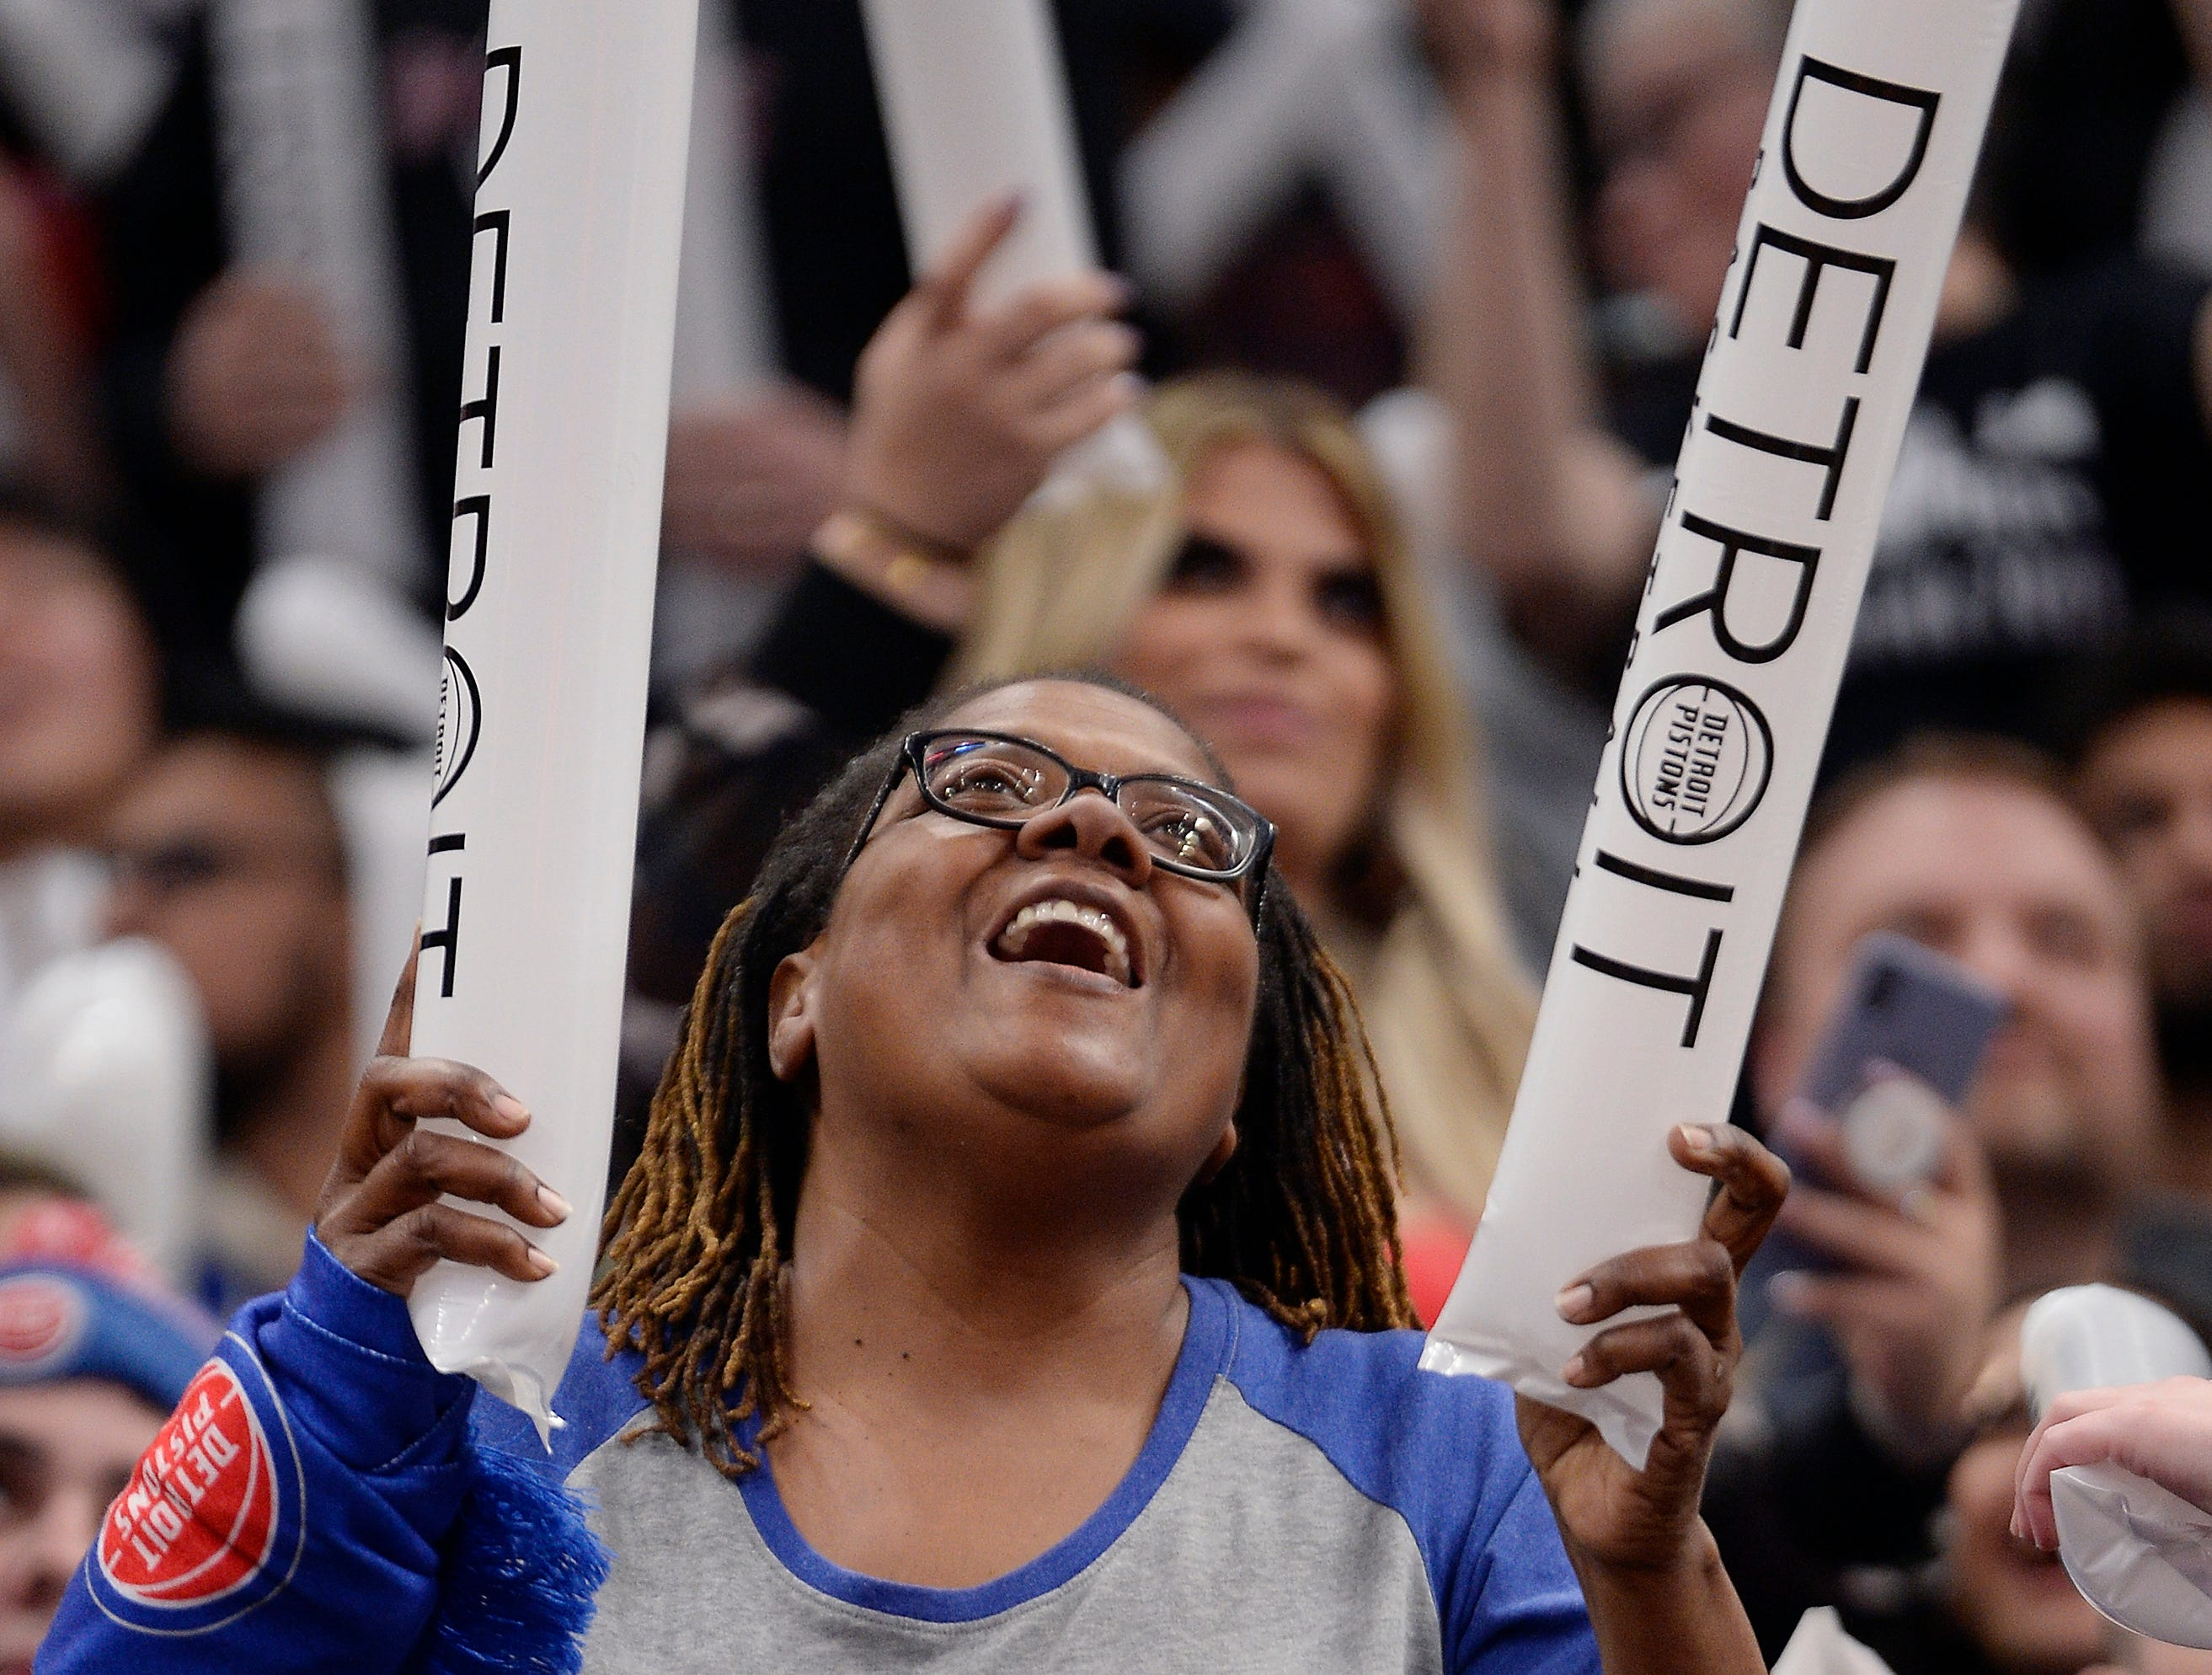 Vivian Simpson, 60, of Detroit cheers during the fourth quarter.